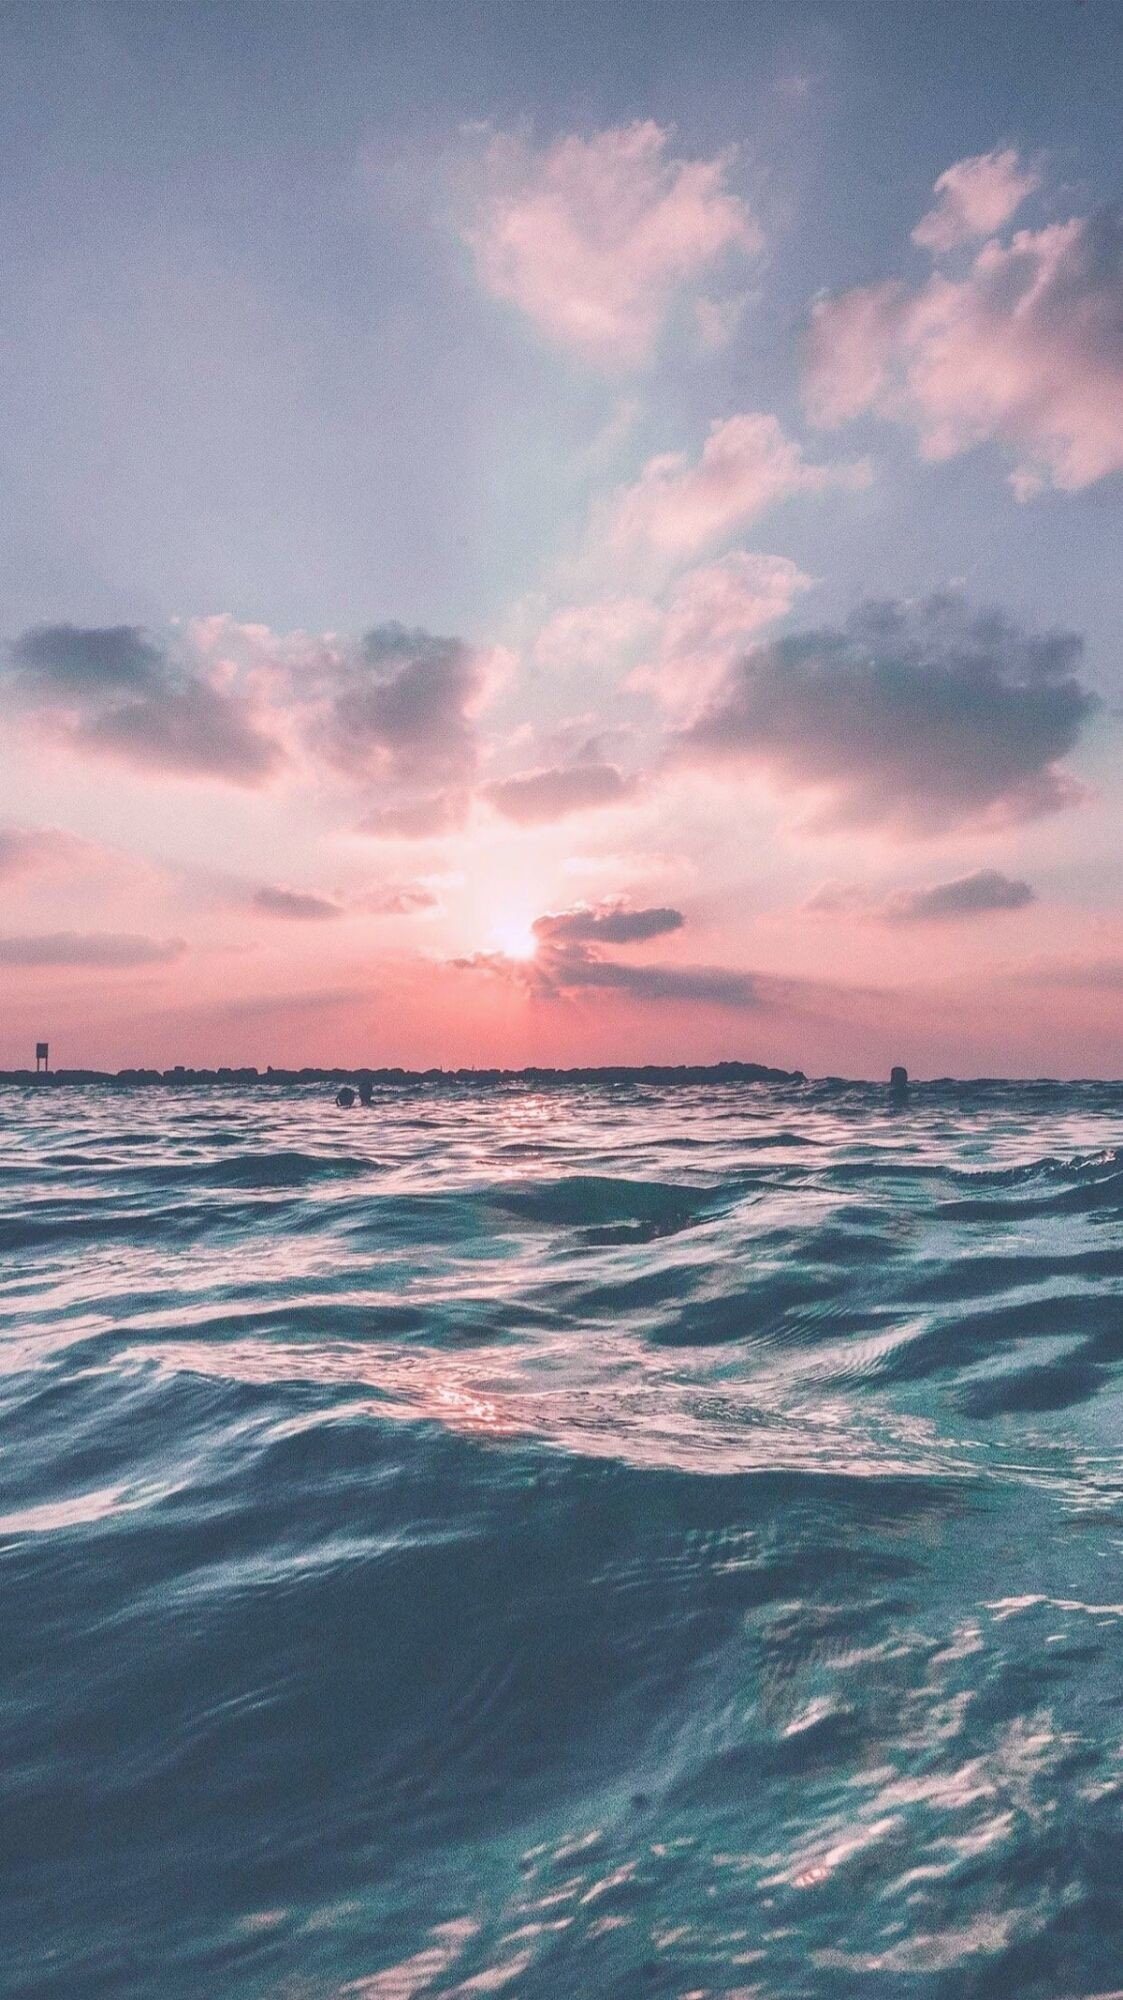 1123x2000 Filter: Cherry 90% #GirlsCam #sky #sea #sunrise #beautiful #cloud #wave  #photography #camera